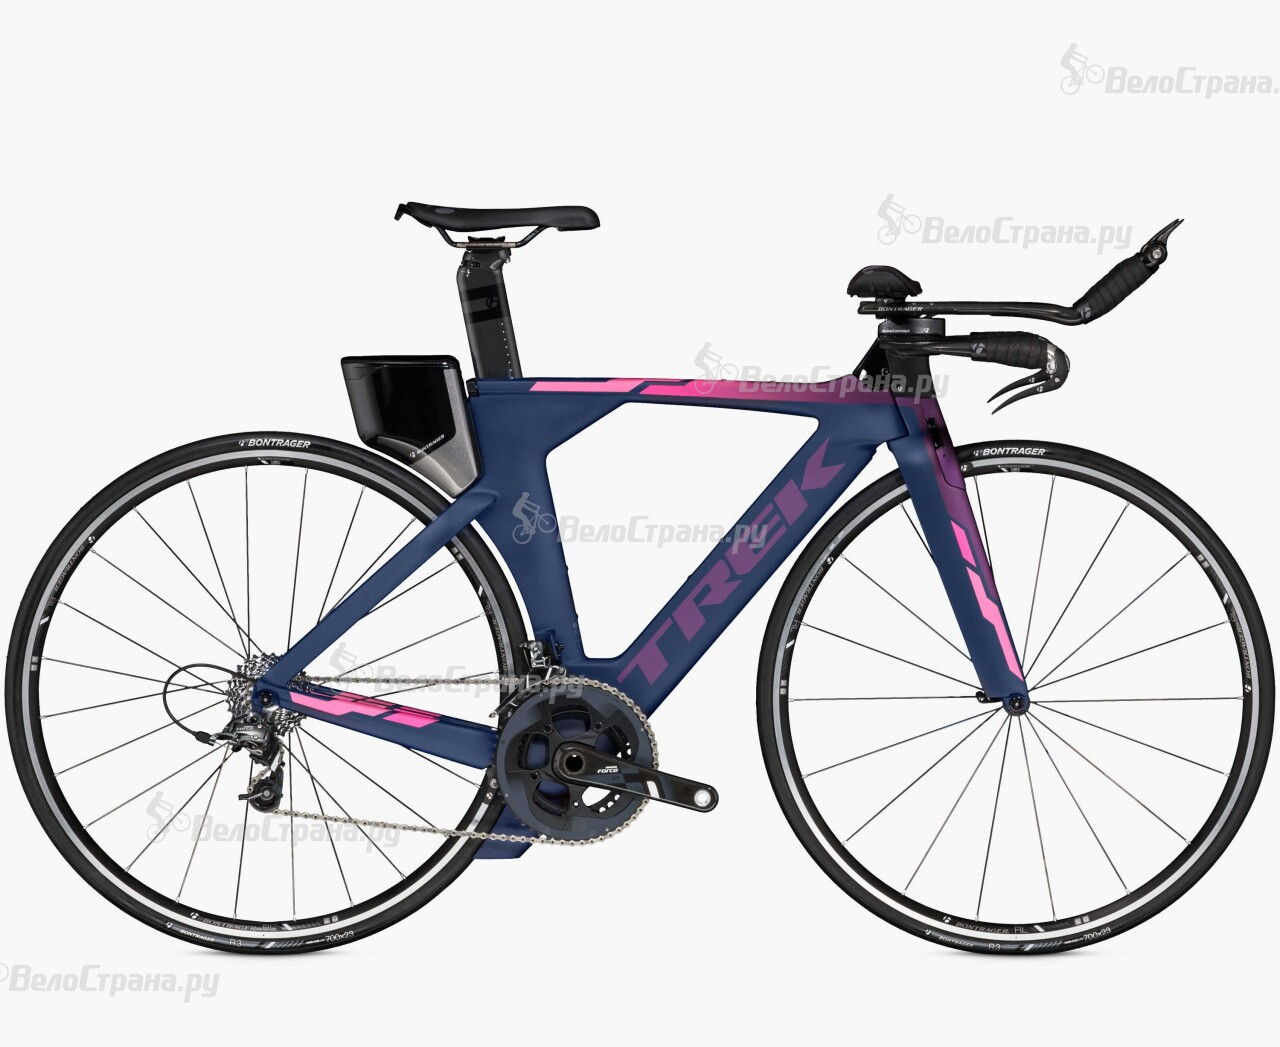 Велосипед Trek Speed Concept 9.5 Women's (2016) concept driven 2sc0435t 2sc0435t2a0 17 new stock